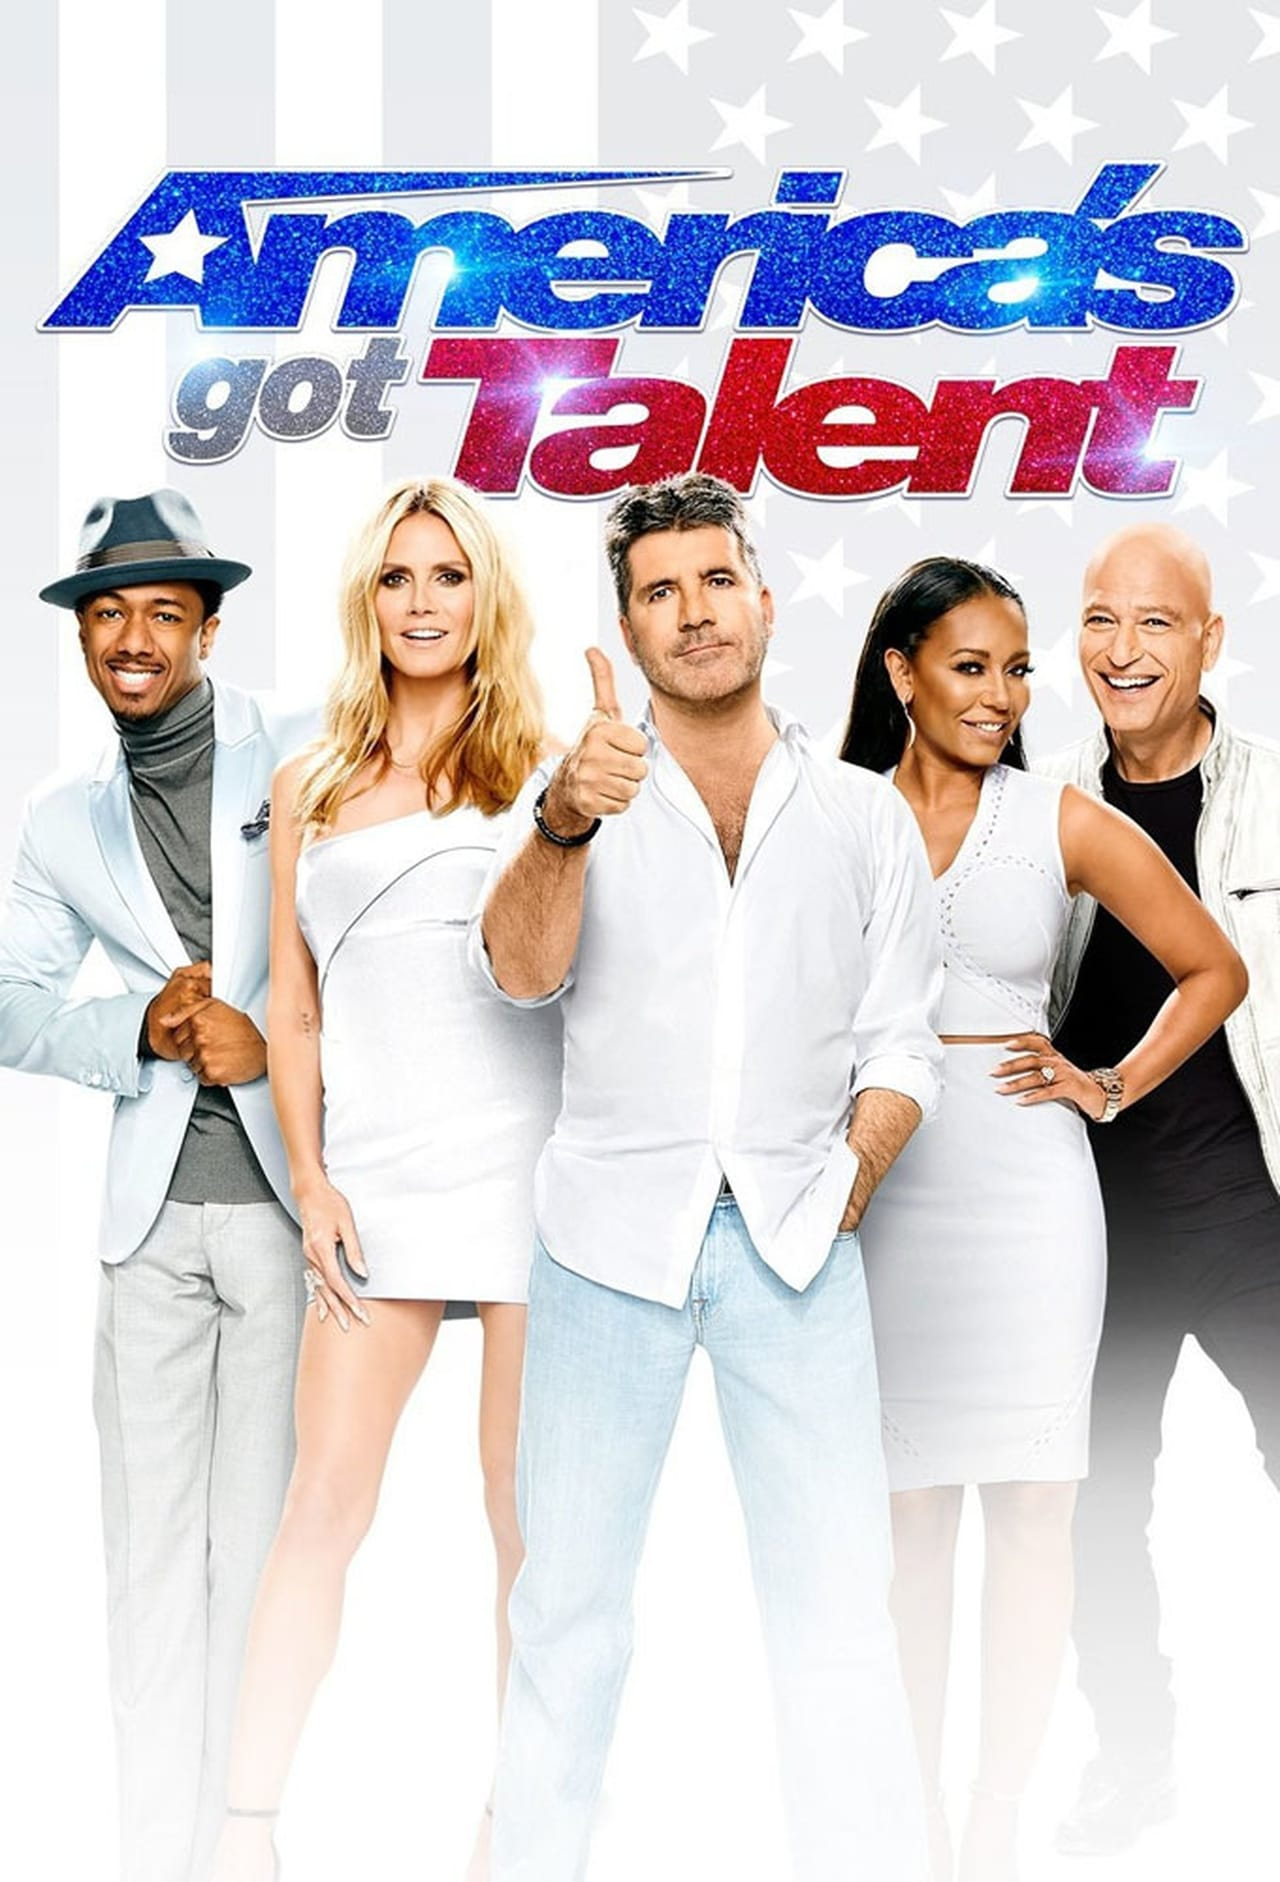 Watch America's Got Talent Season 11 Online